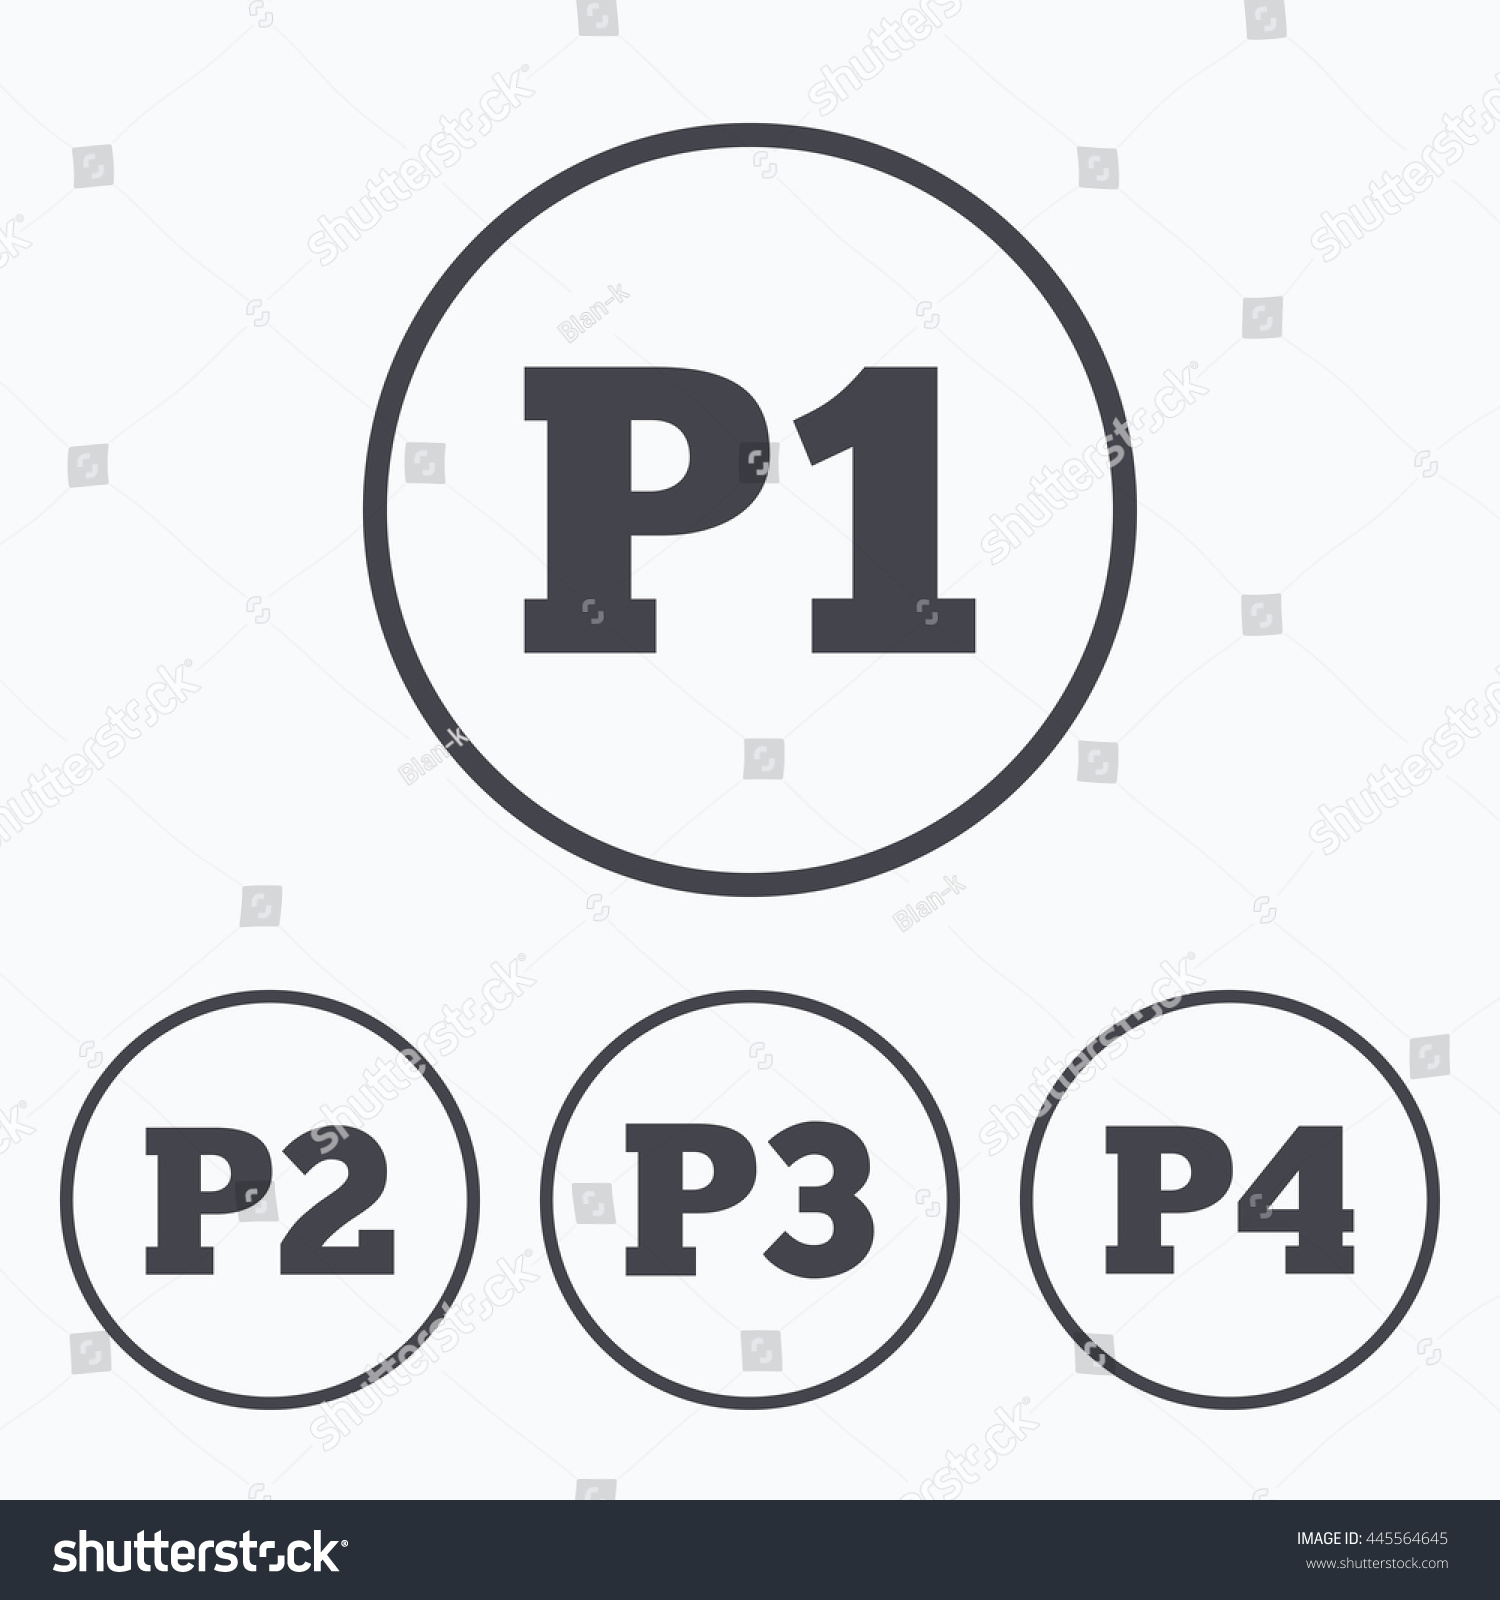 Royalty Free Stock Illustration Of Car Parking Icons First Second